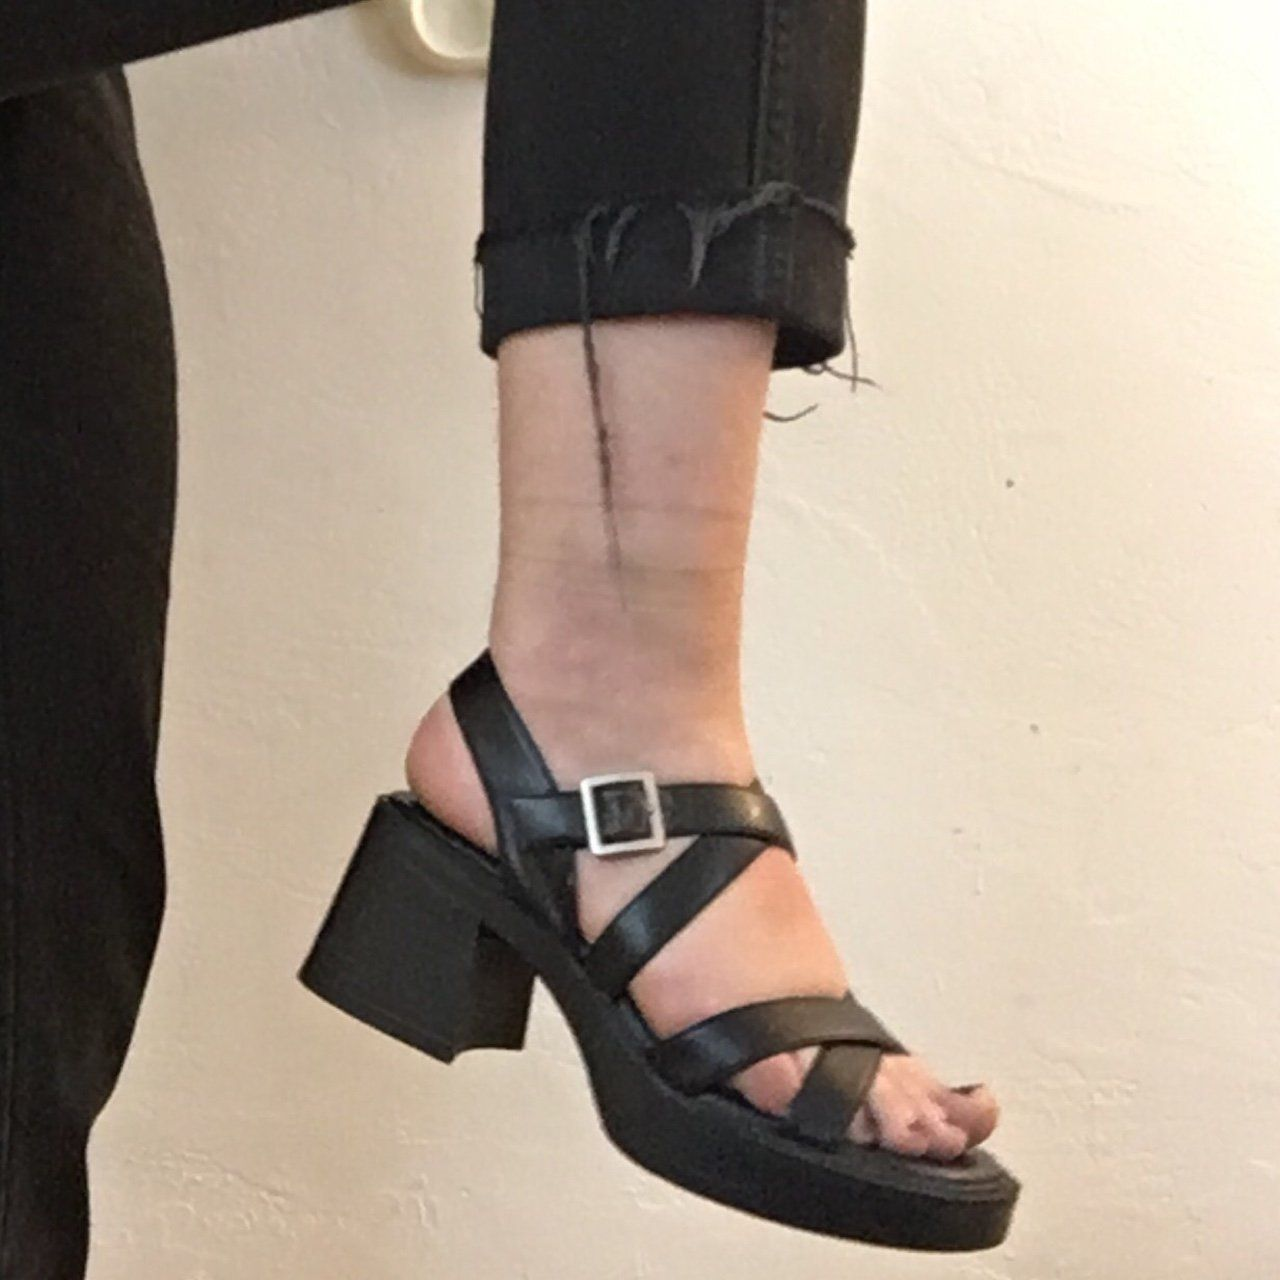 c55381e623be chunky heel 90s strappy faux leather sandals serve tsunade realness w these  babies!! sooo cute n they go w everything